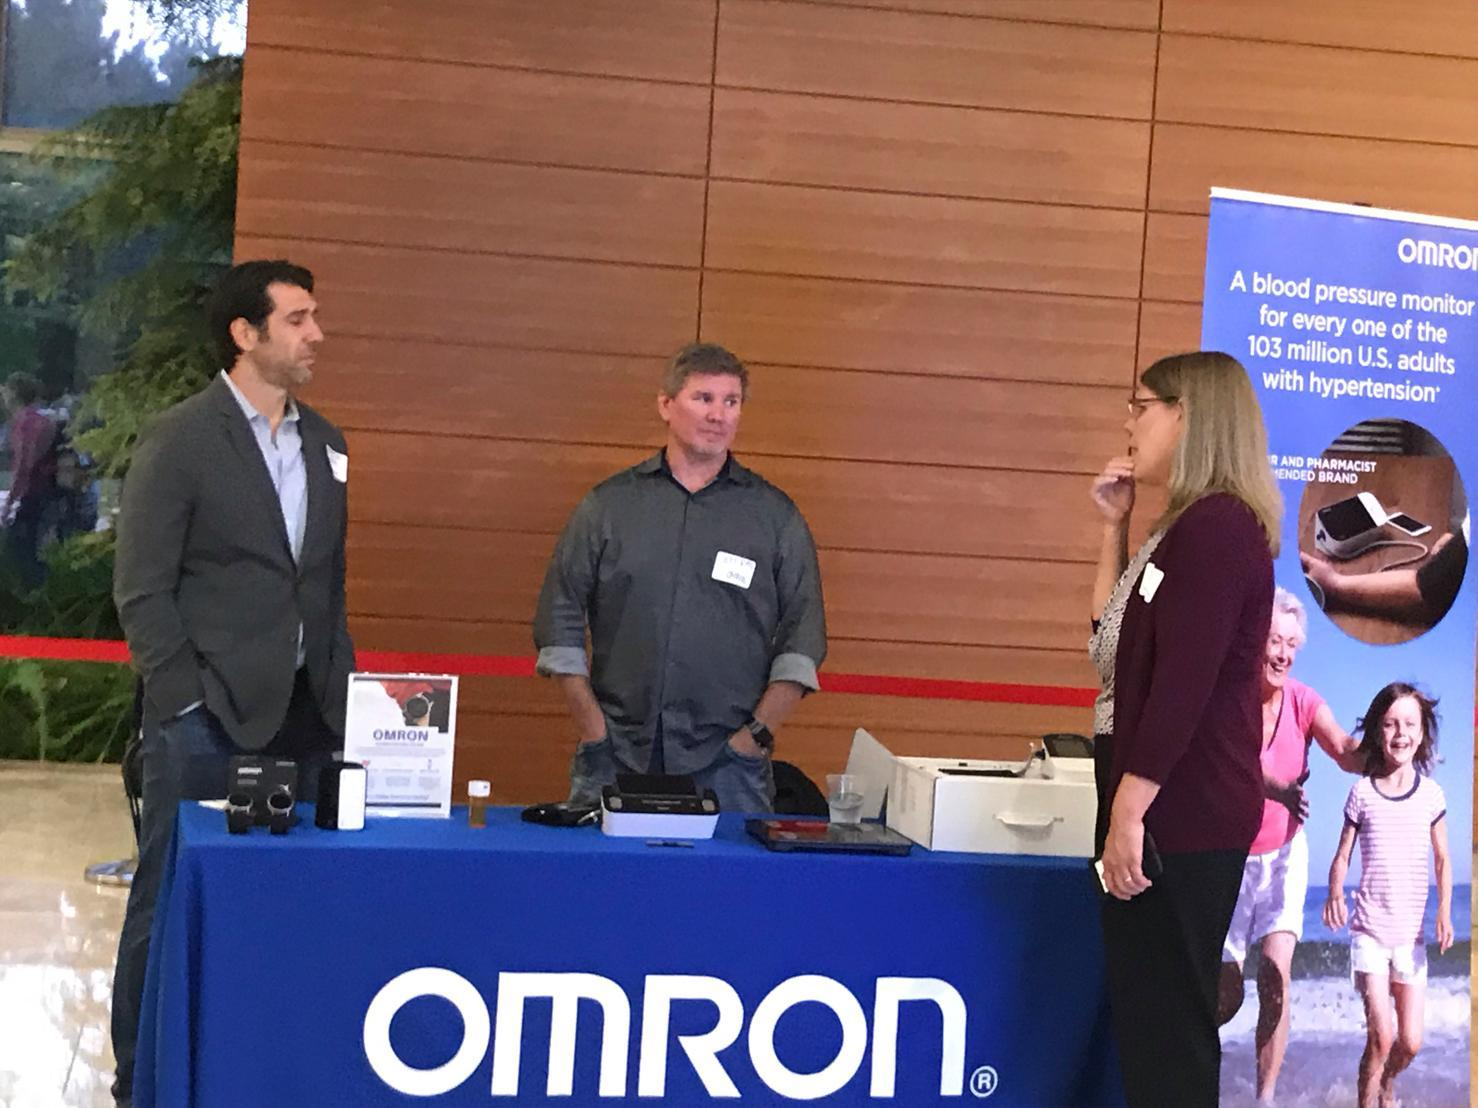 Omron healthcare innovation demo